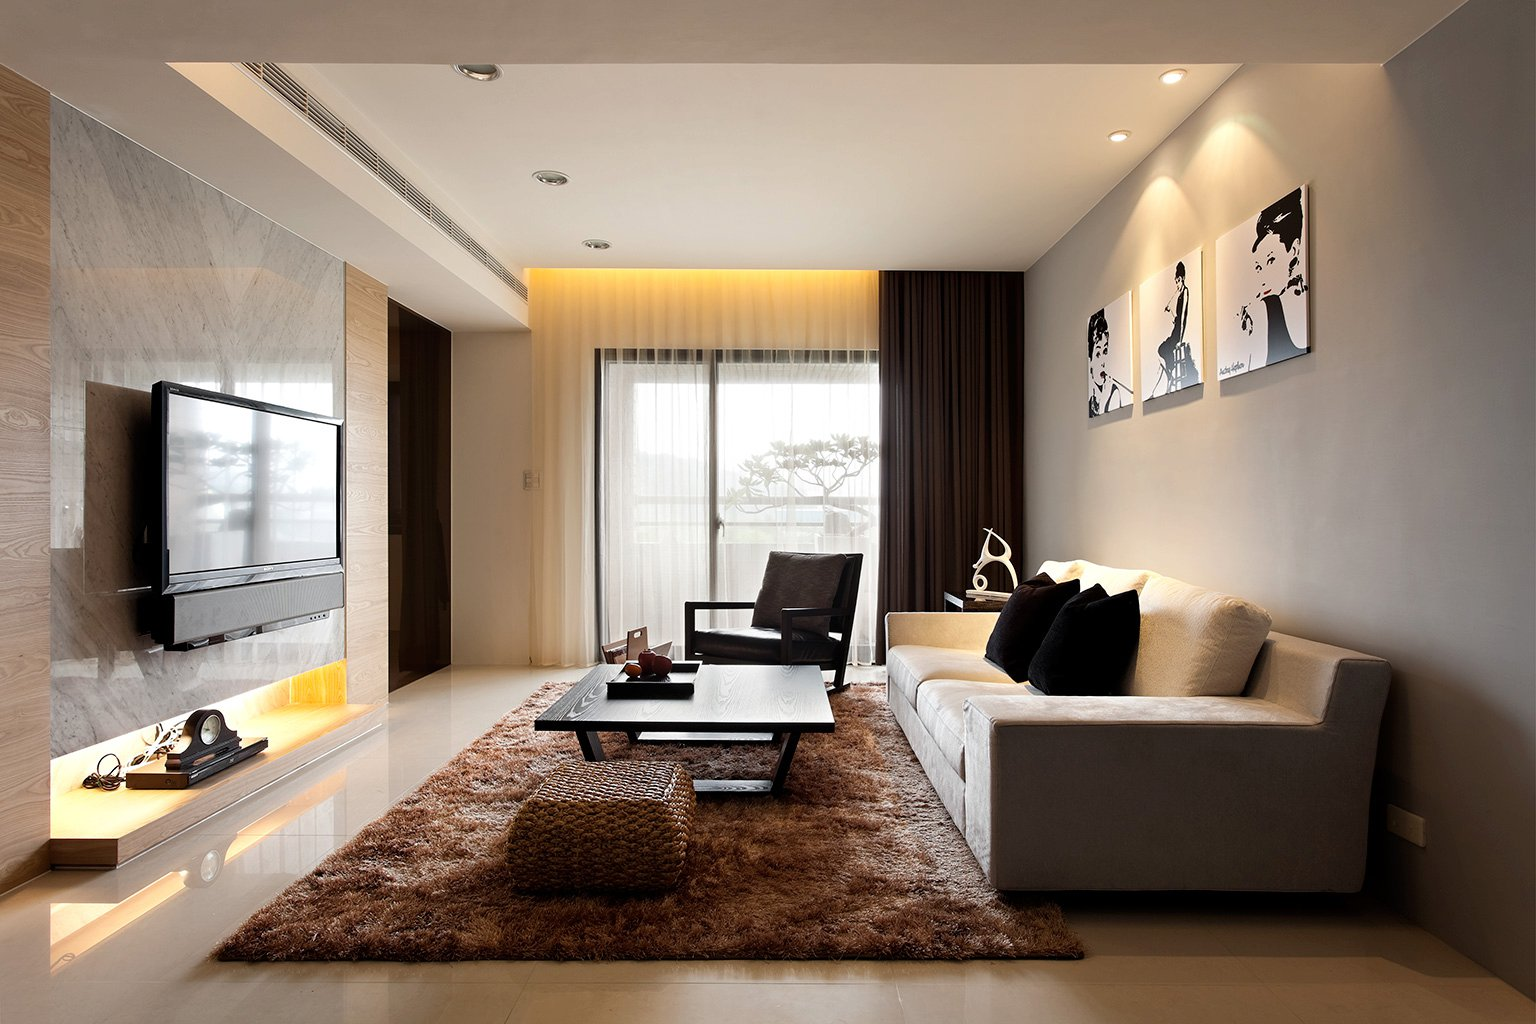 Amazing Modern Living Room Decor 1536 x 1024 · 238 kB · jpeg